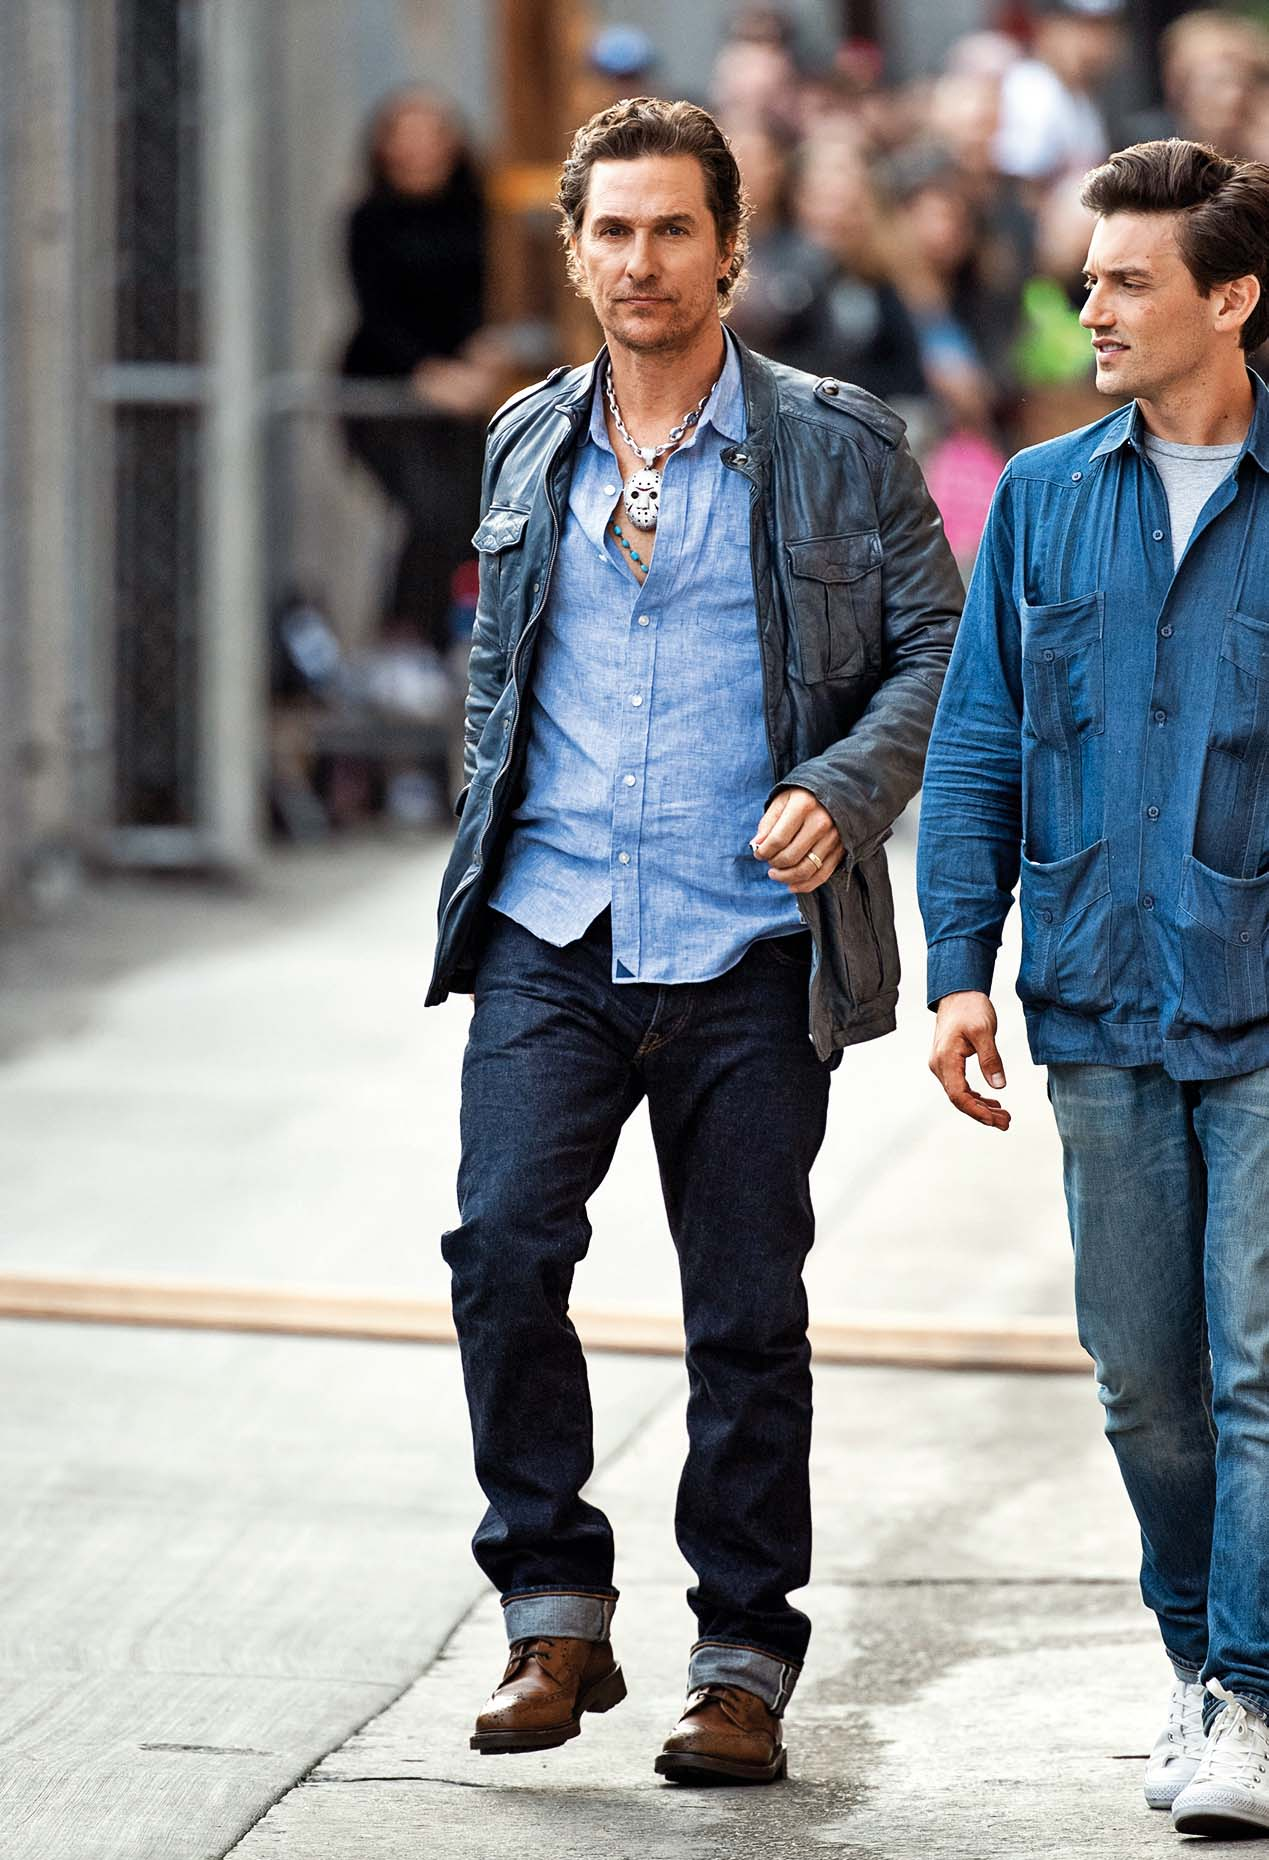 LOS ANGELES, CA - MARCH 27: Matthew McConaughey is seen at 'Jimmy Kimmel Live' on March 27, 2019 in Los Angeles, California.  (Photo by RB/Bauer-Griffin/GC Images)